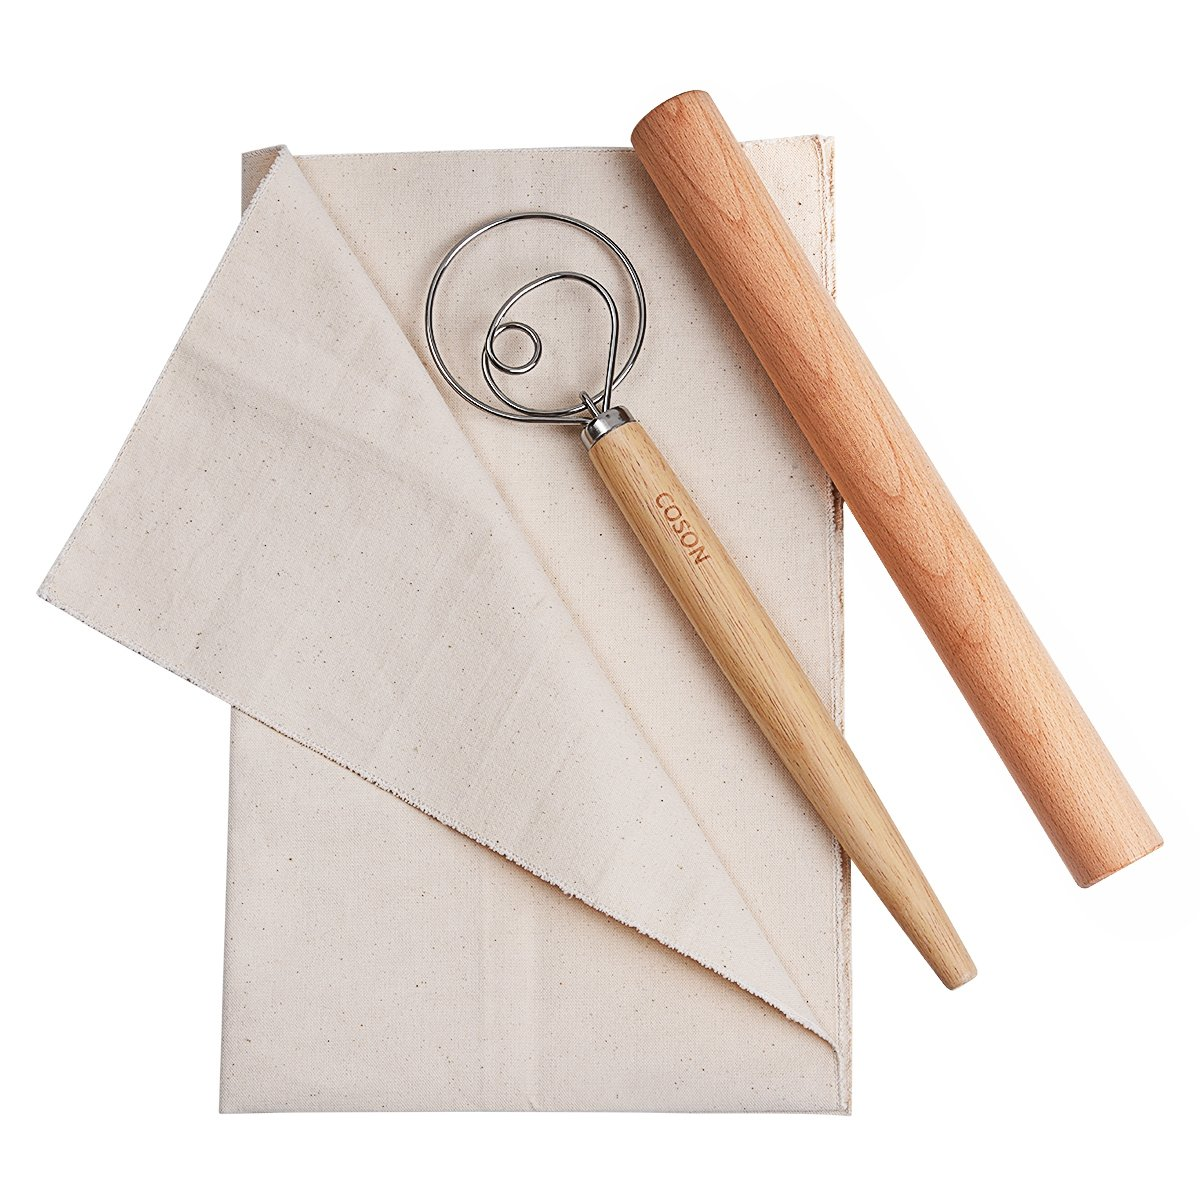 Pastry Baking Tools Set Wooden Rolling Pins 13'' Danish Dough Whisk Hand Mixer 13.5'' Baker's Couche Flax Linen Proofing Cloth 18''x29.5'' for Making Baguettes Bread Cake Pizza (Wood, X-Large)